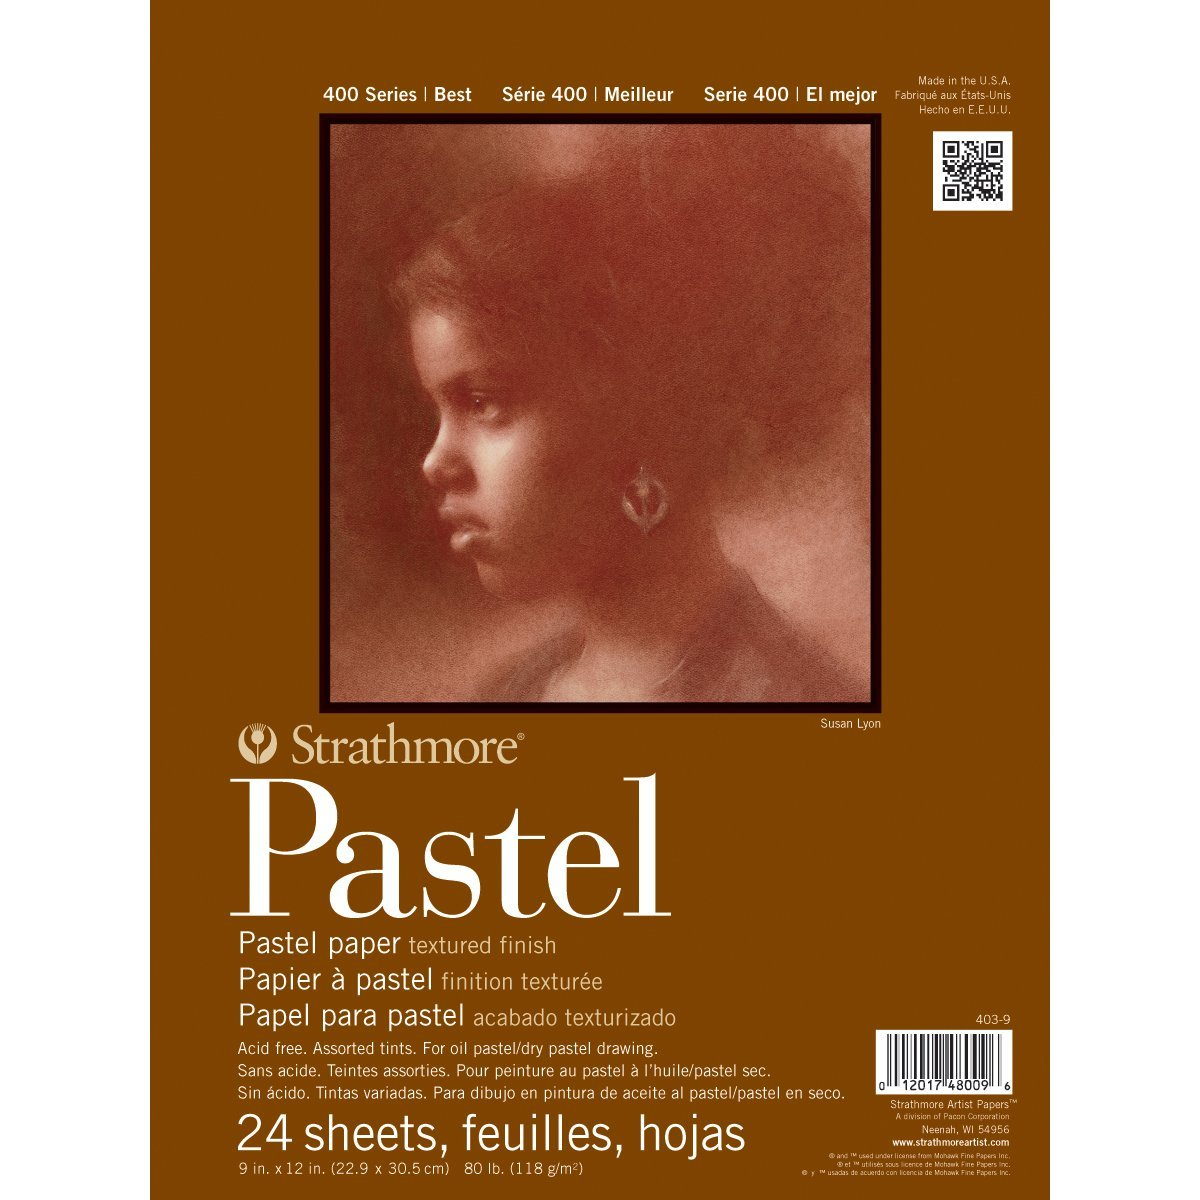 Strathmore 400 Series Pastel Pad, Assorted Colors, 9''x12'' Glue Bound, 24 Sheets by Strathmore